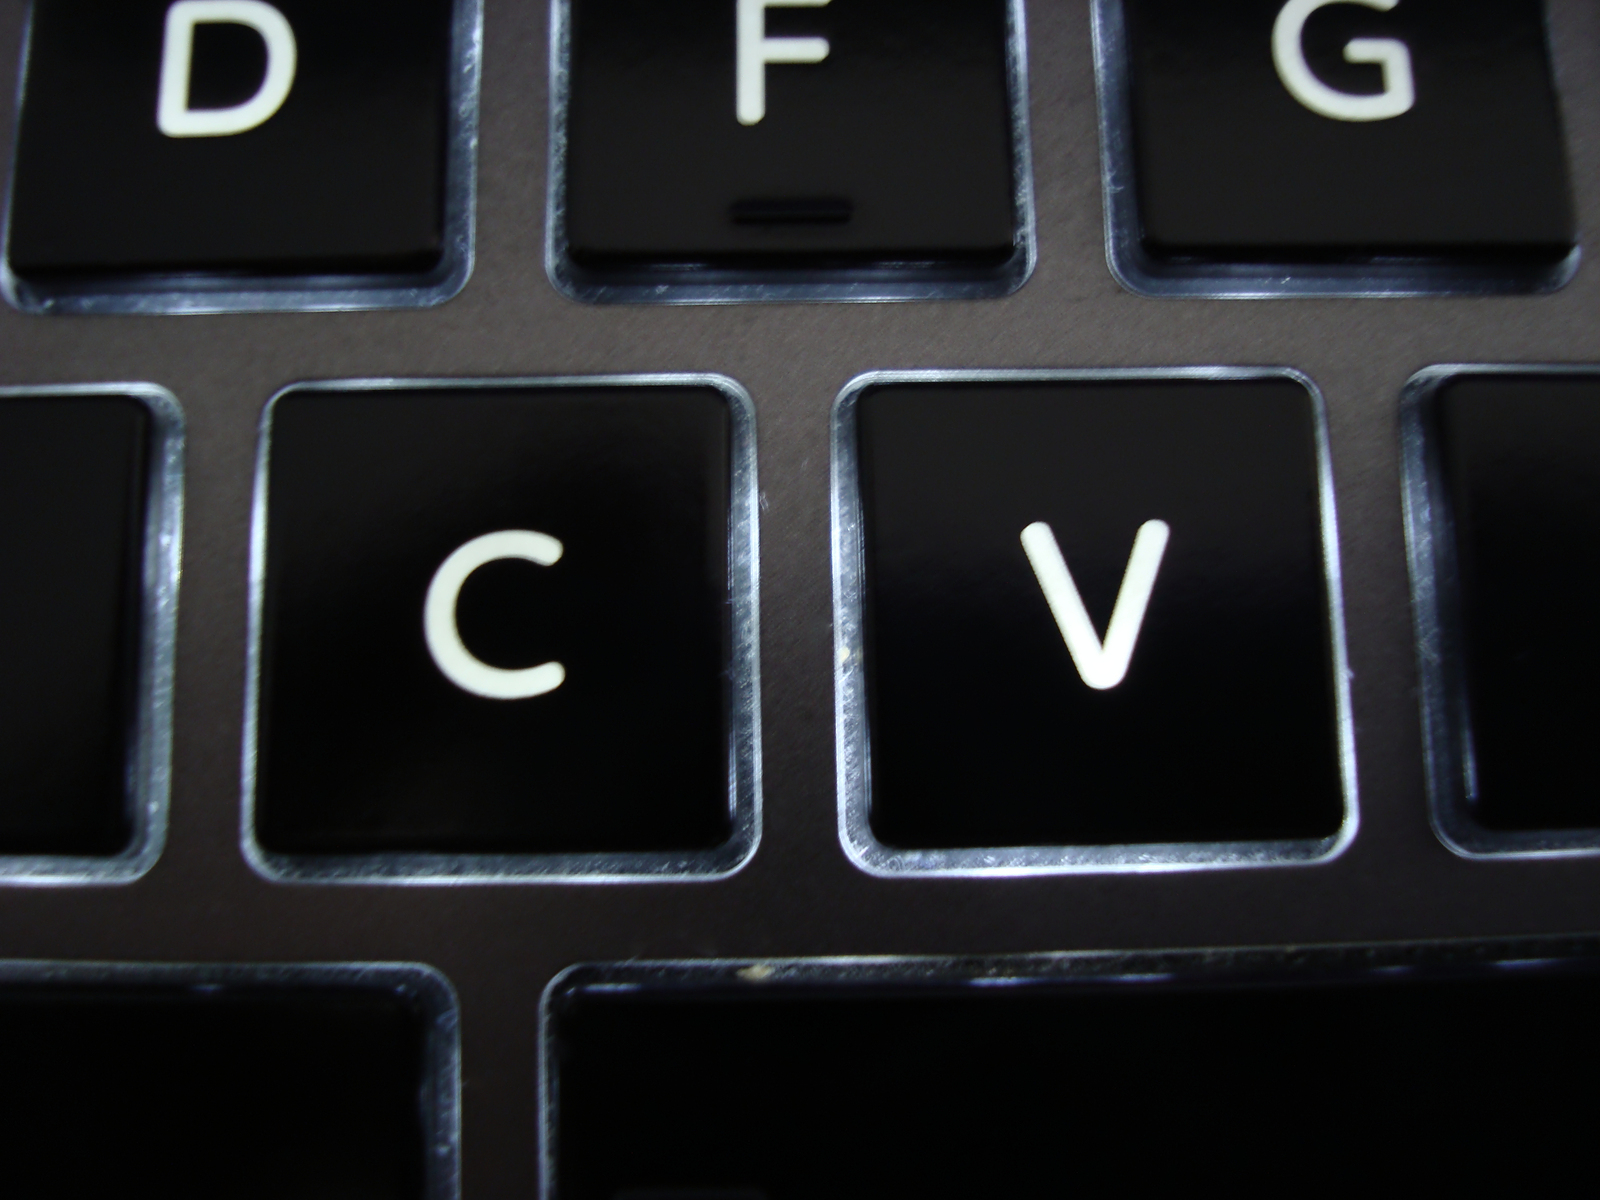 Writing an effective CV - Image Credit: Thinkstock